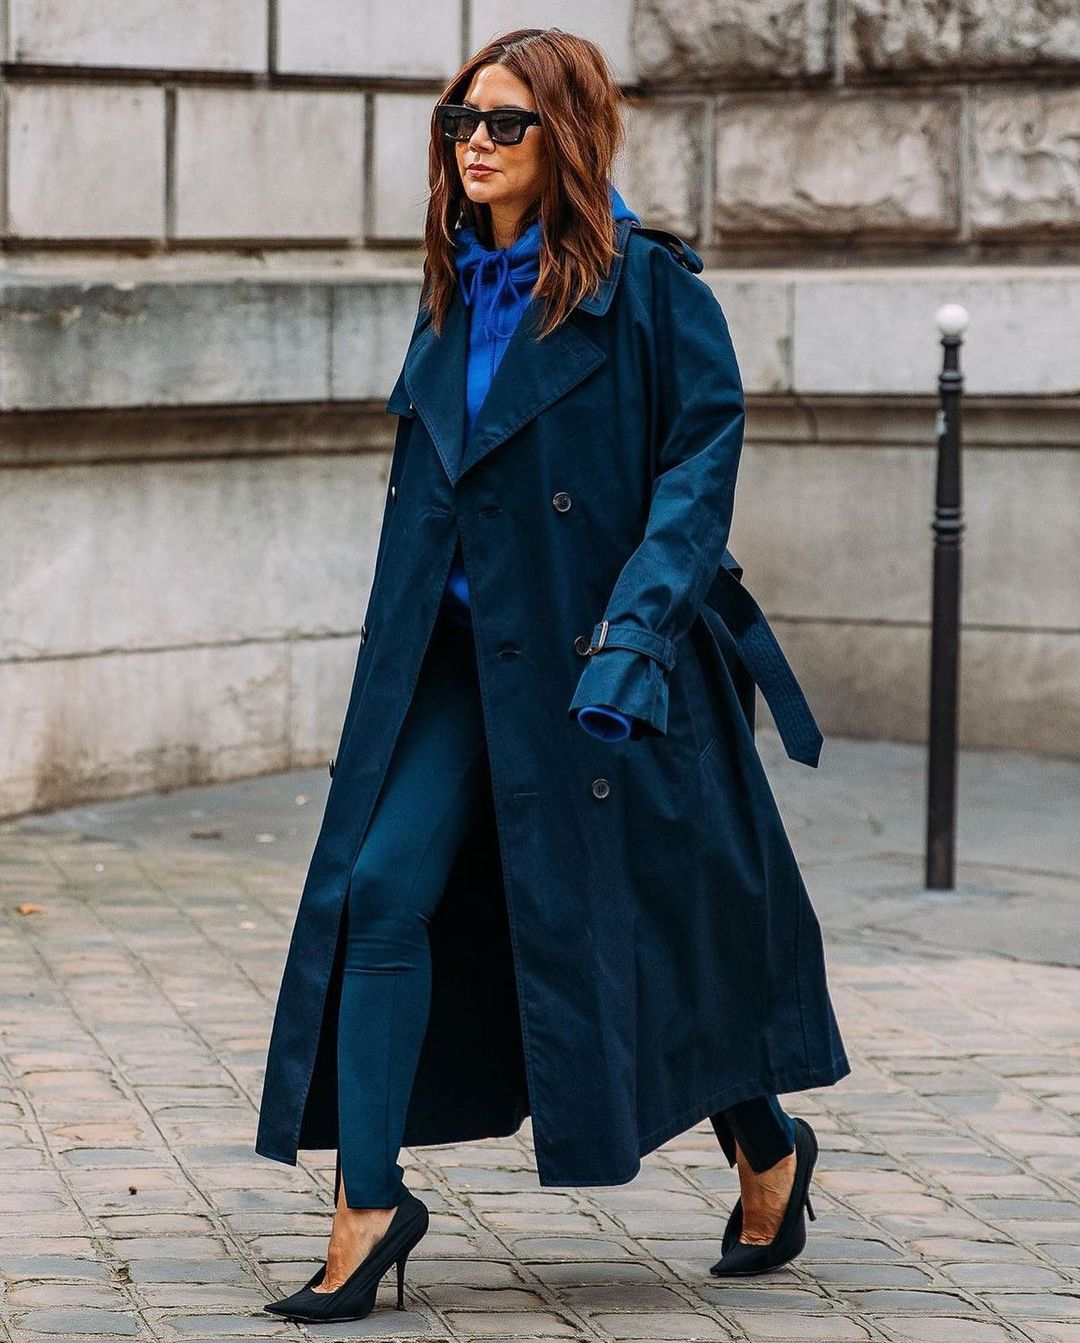 christine-centenera-wardrobe-nyc-double-breasted-trench-coat-instagram